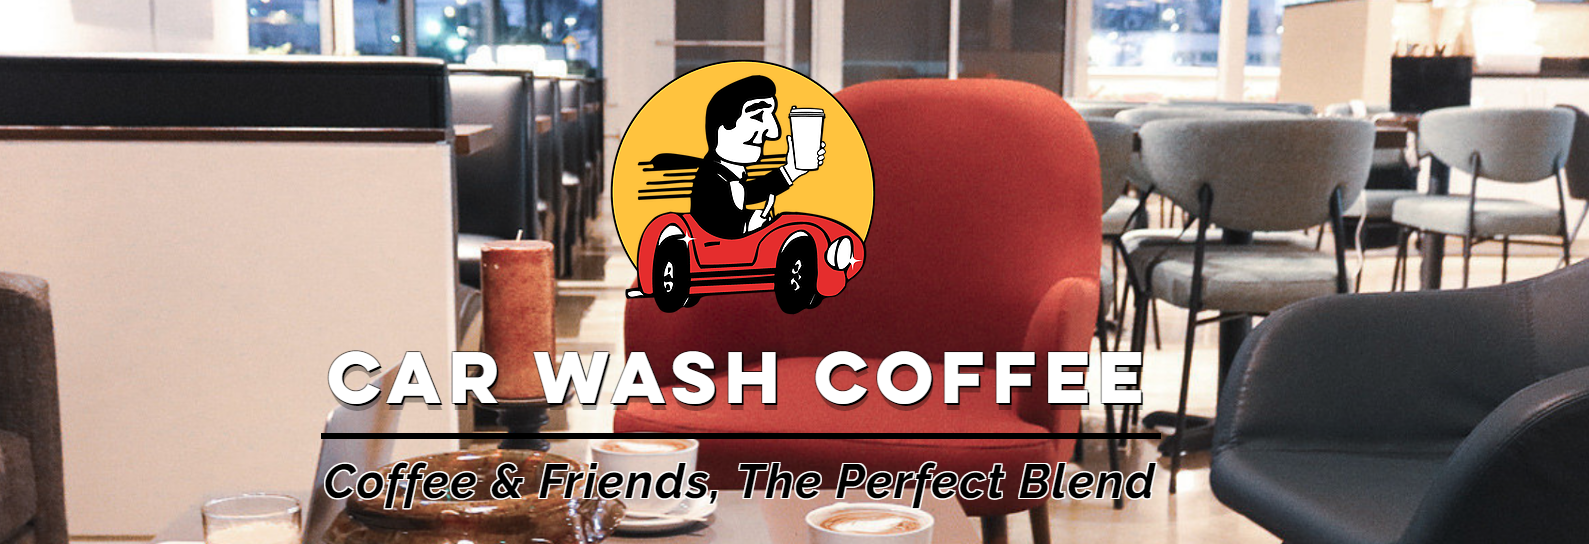 car wash coffee in kensington md